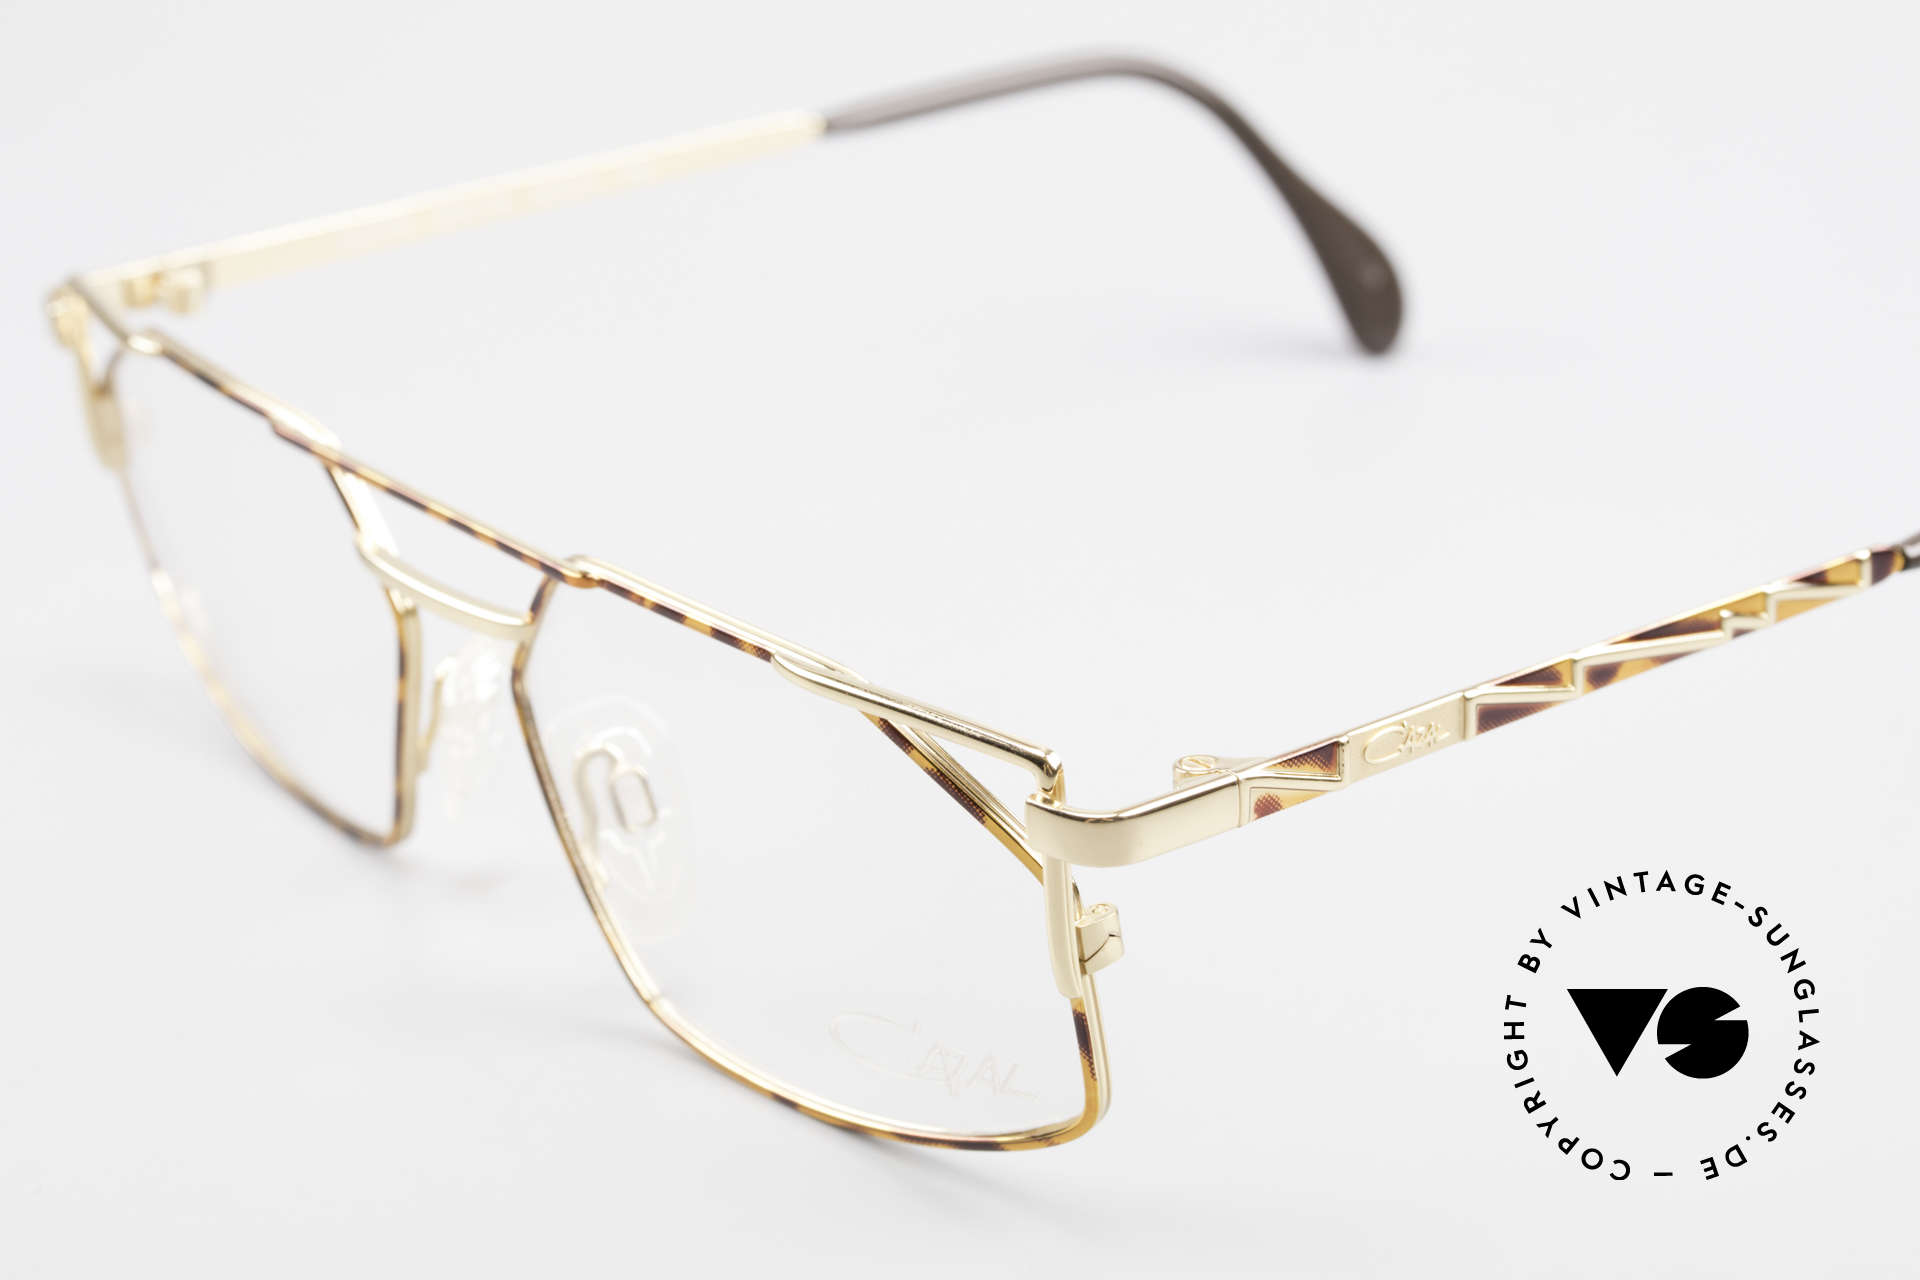 Cazal 751 90's Designer Eyeglasses, unworn, new old stock, in size 56-15 (MEDIUM size), Made for Men